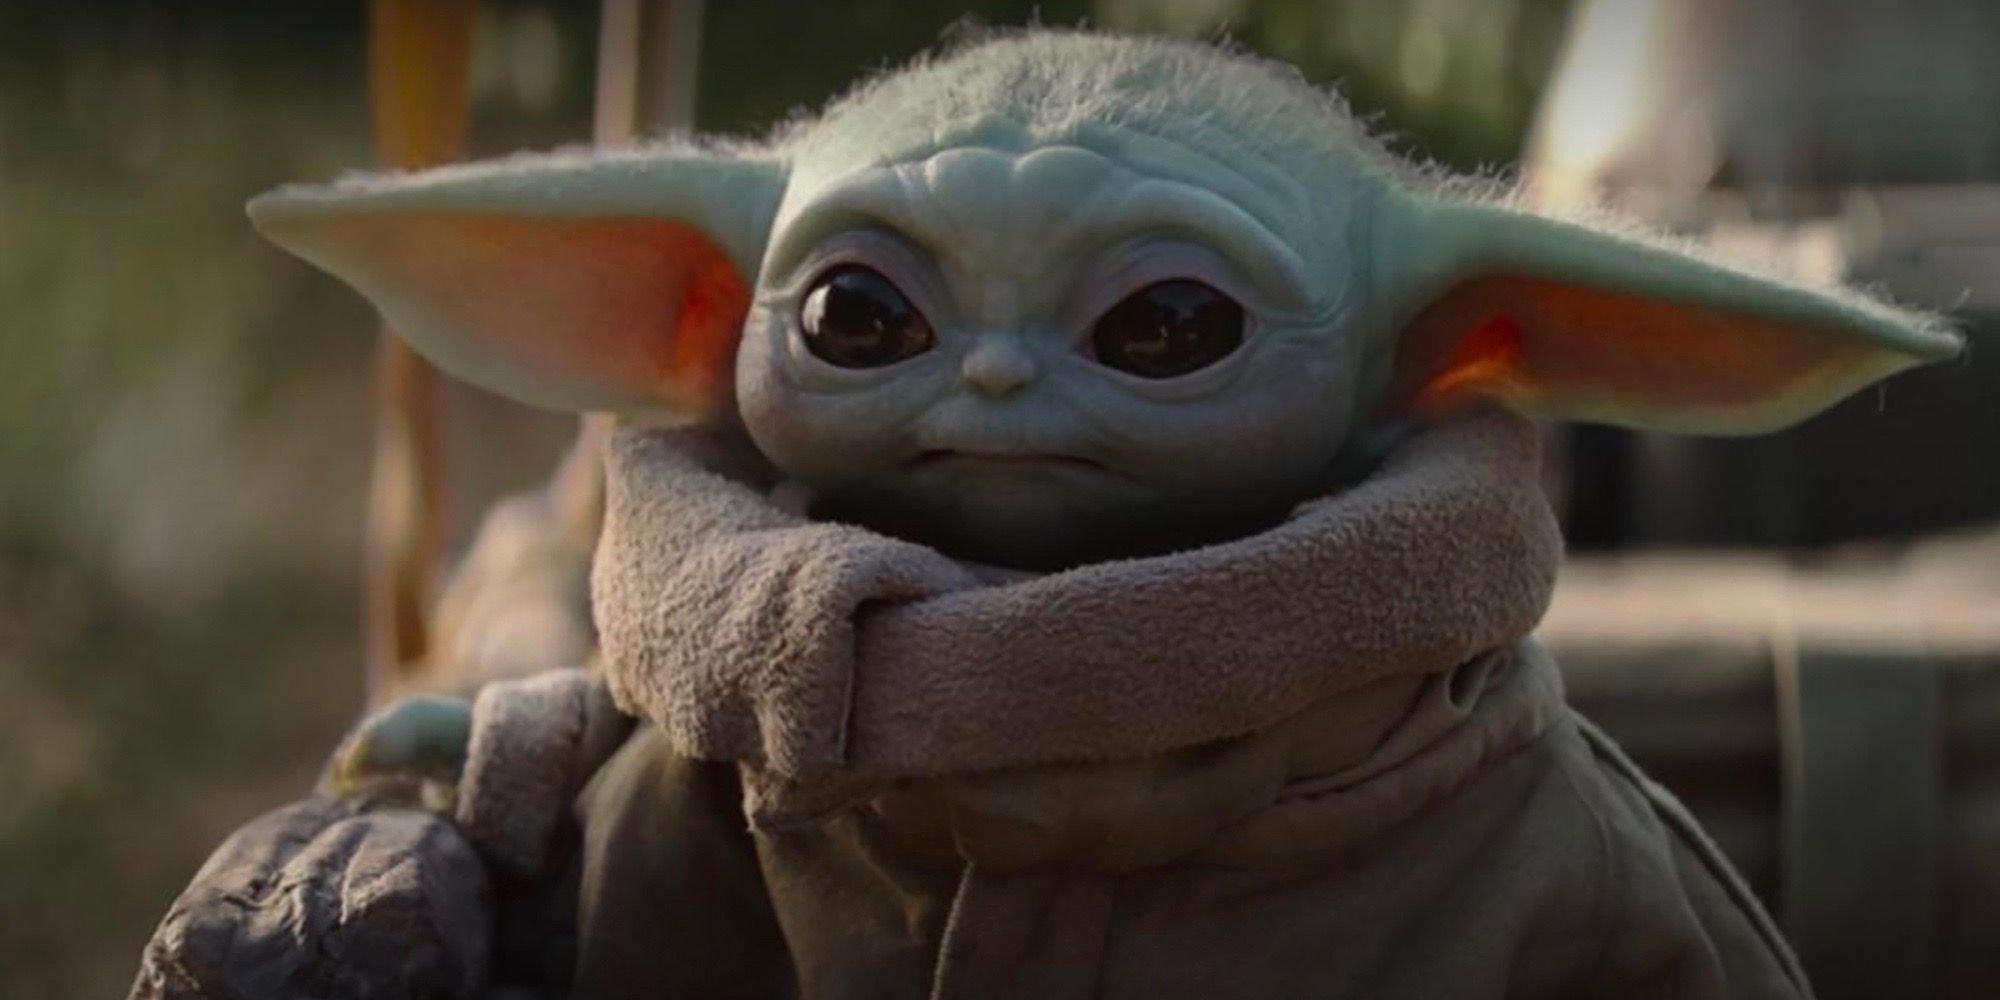 Adorable Baby Yoda Plush Toy Coming From Build A Bear